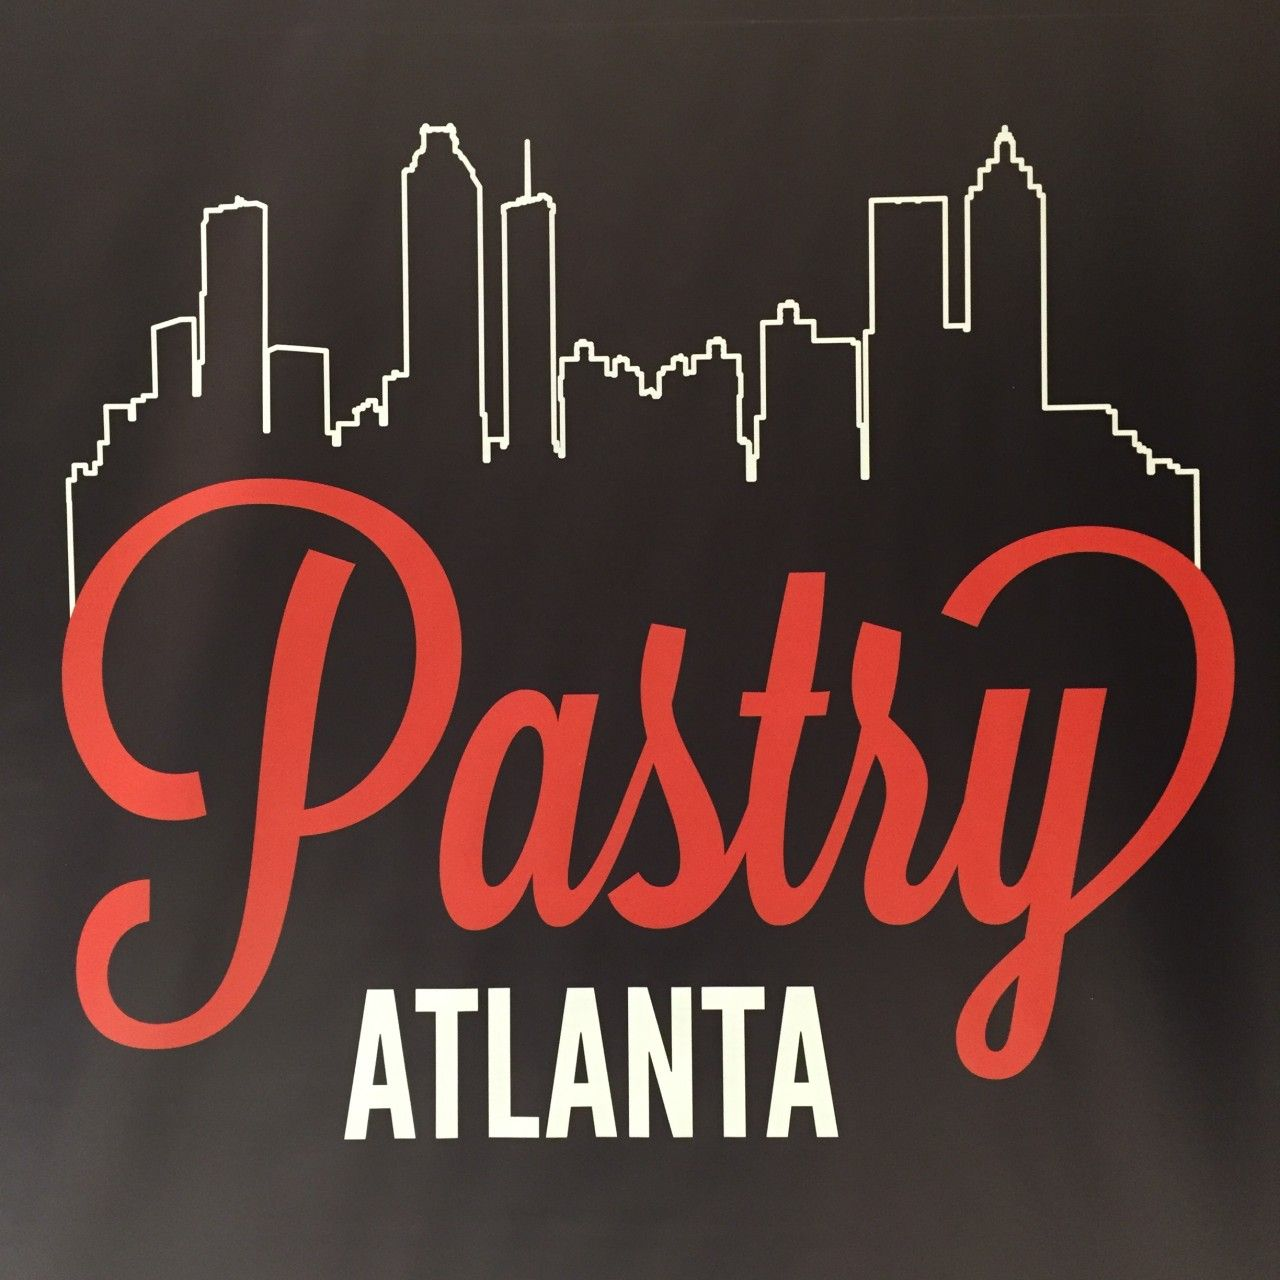 Pastry Live!